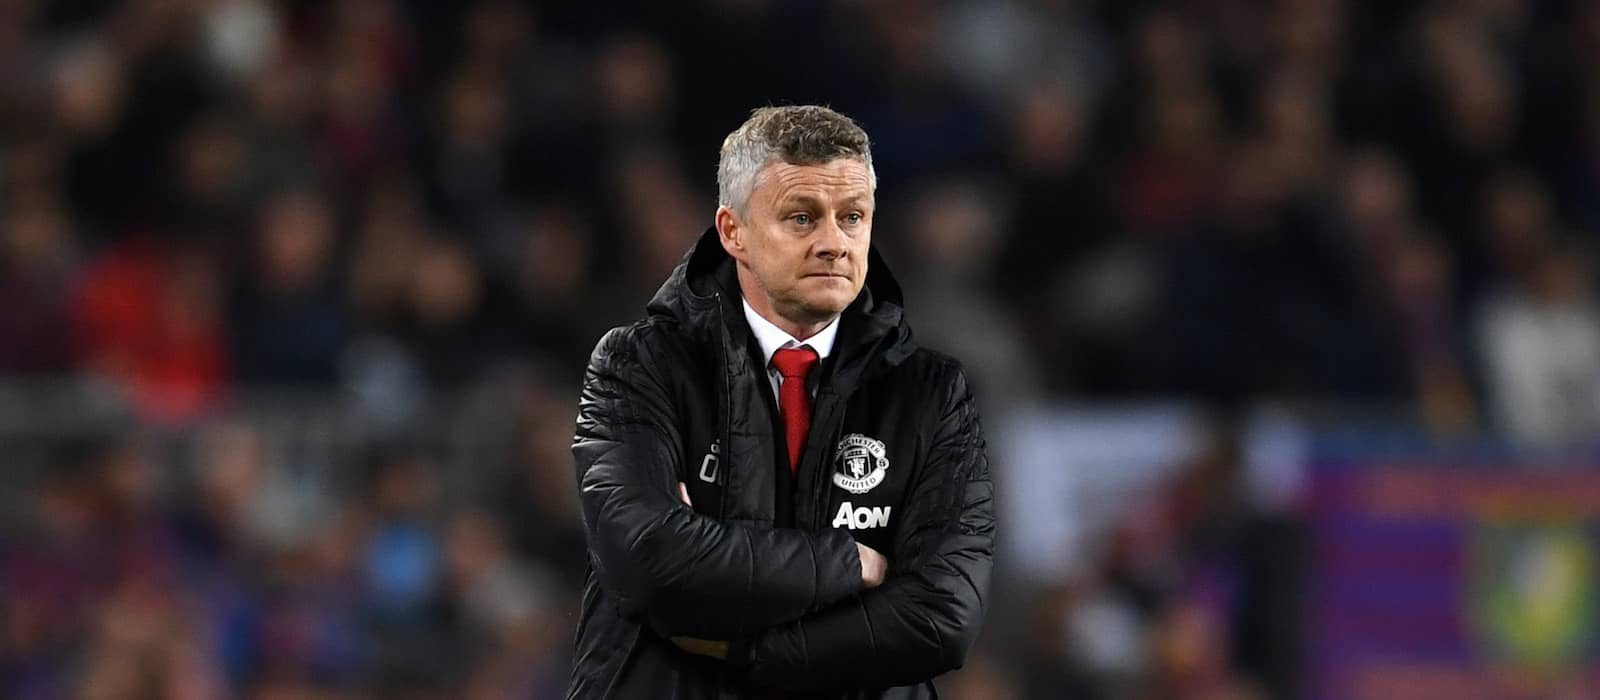 Man United's problems: Two positions Ole Gunnar Solskjaer must address